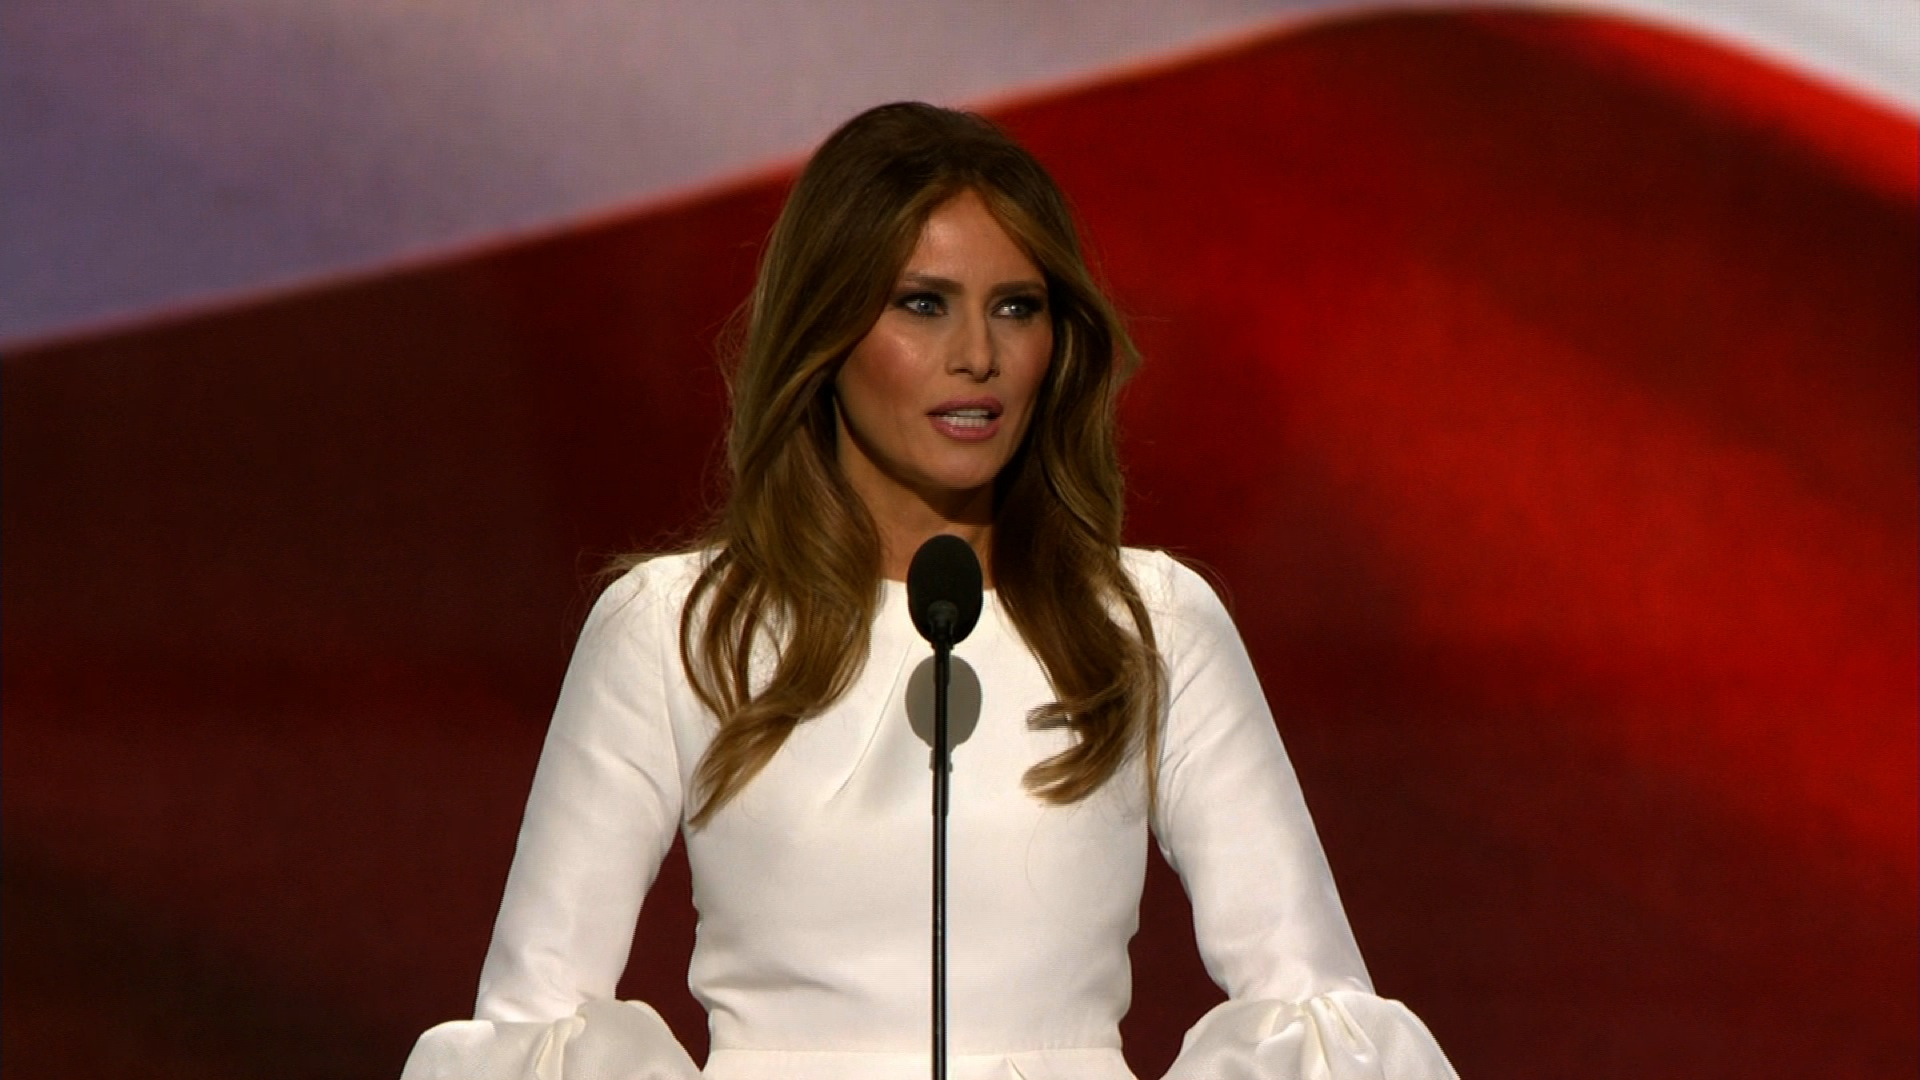 Melania Trump plots convention speech that hopes to avoid past missteps